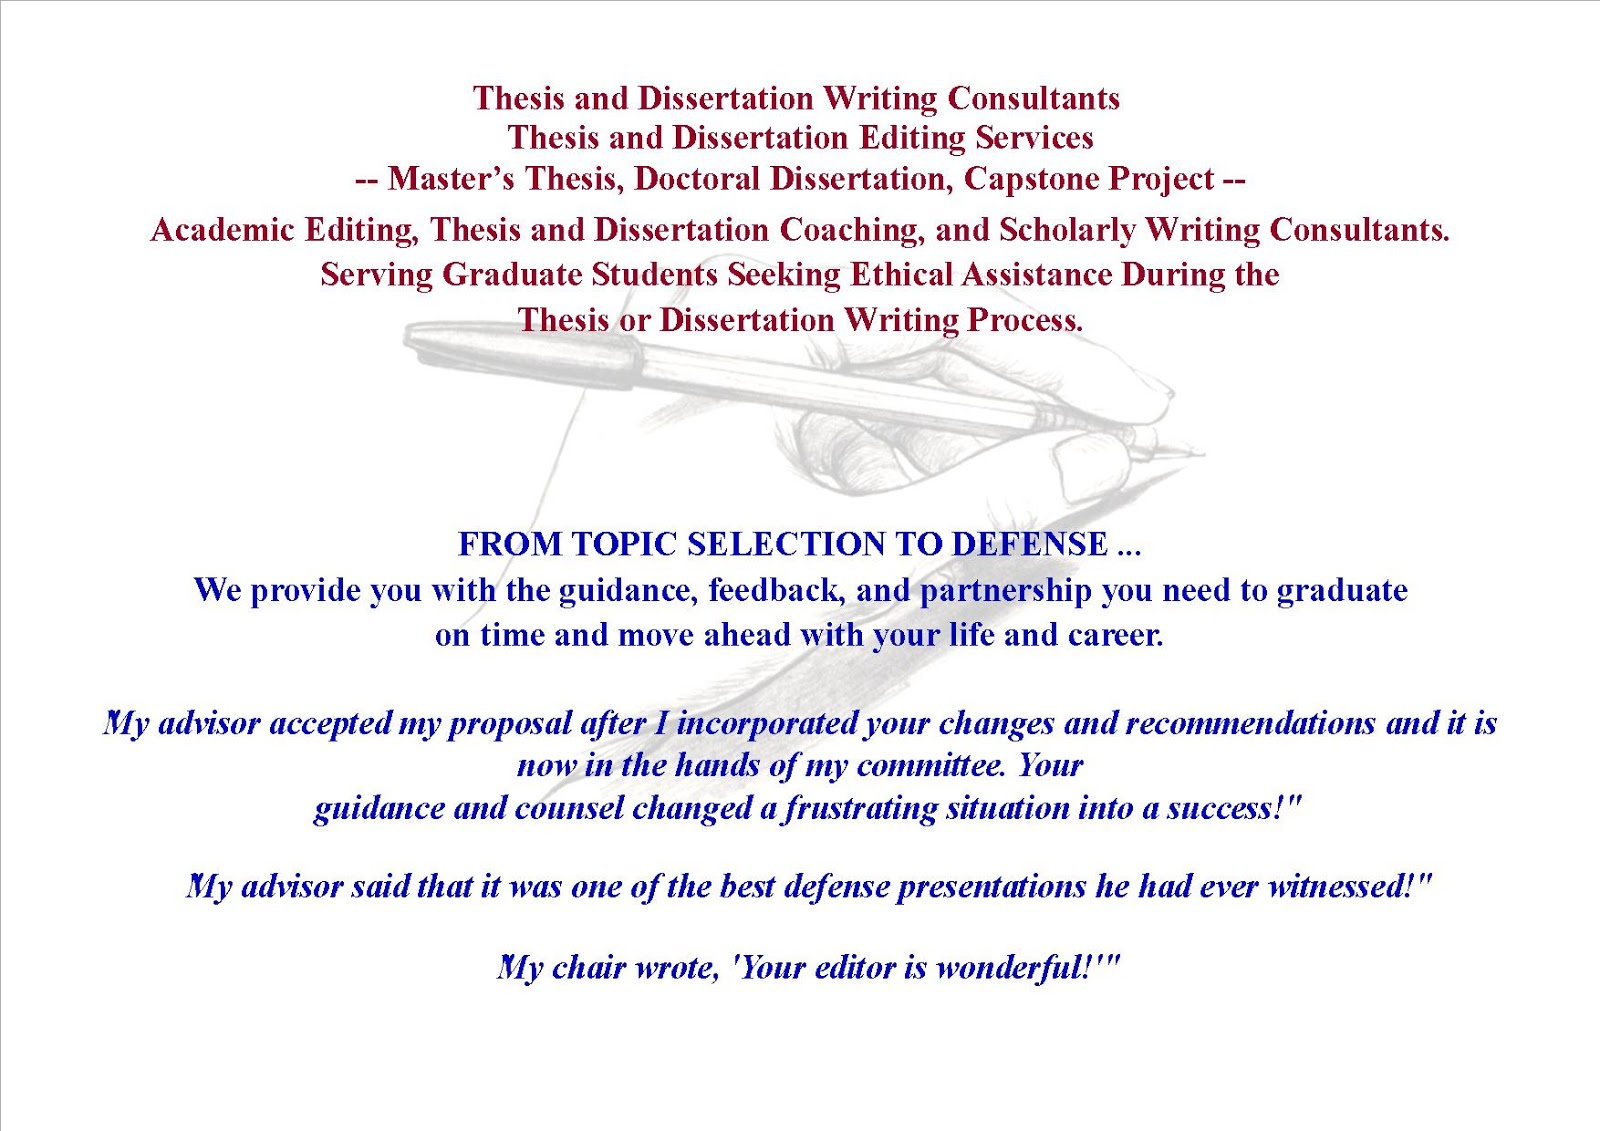 How we will proofread and edit your dissertation or thesis